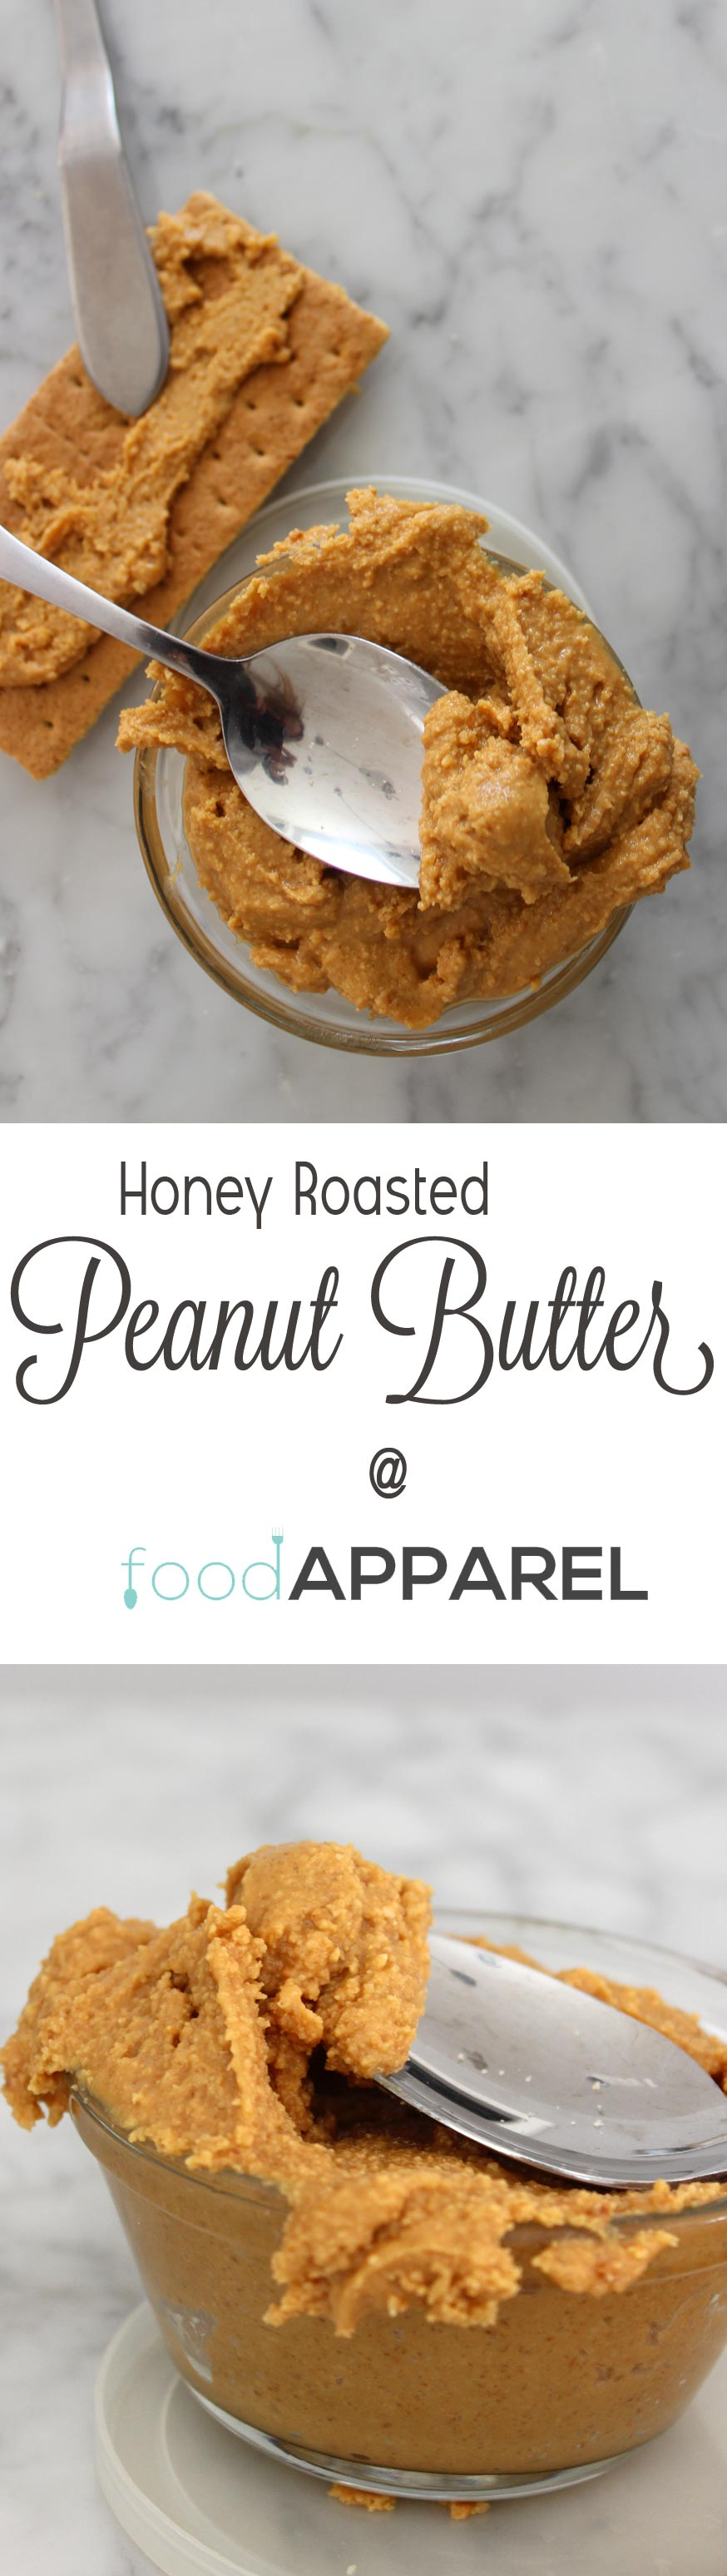 Honey Roasted Peanut Butter Recipe - this is so easy to make and so delicious!